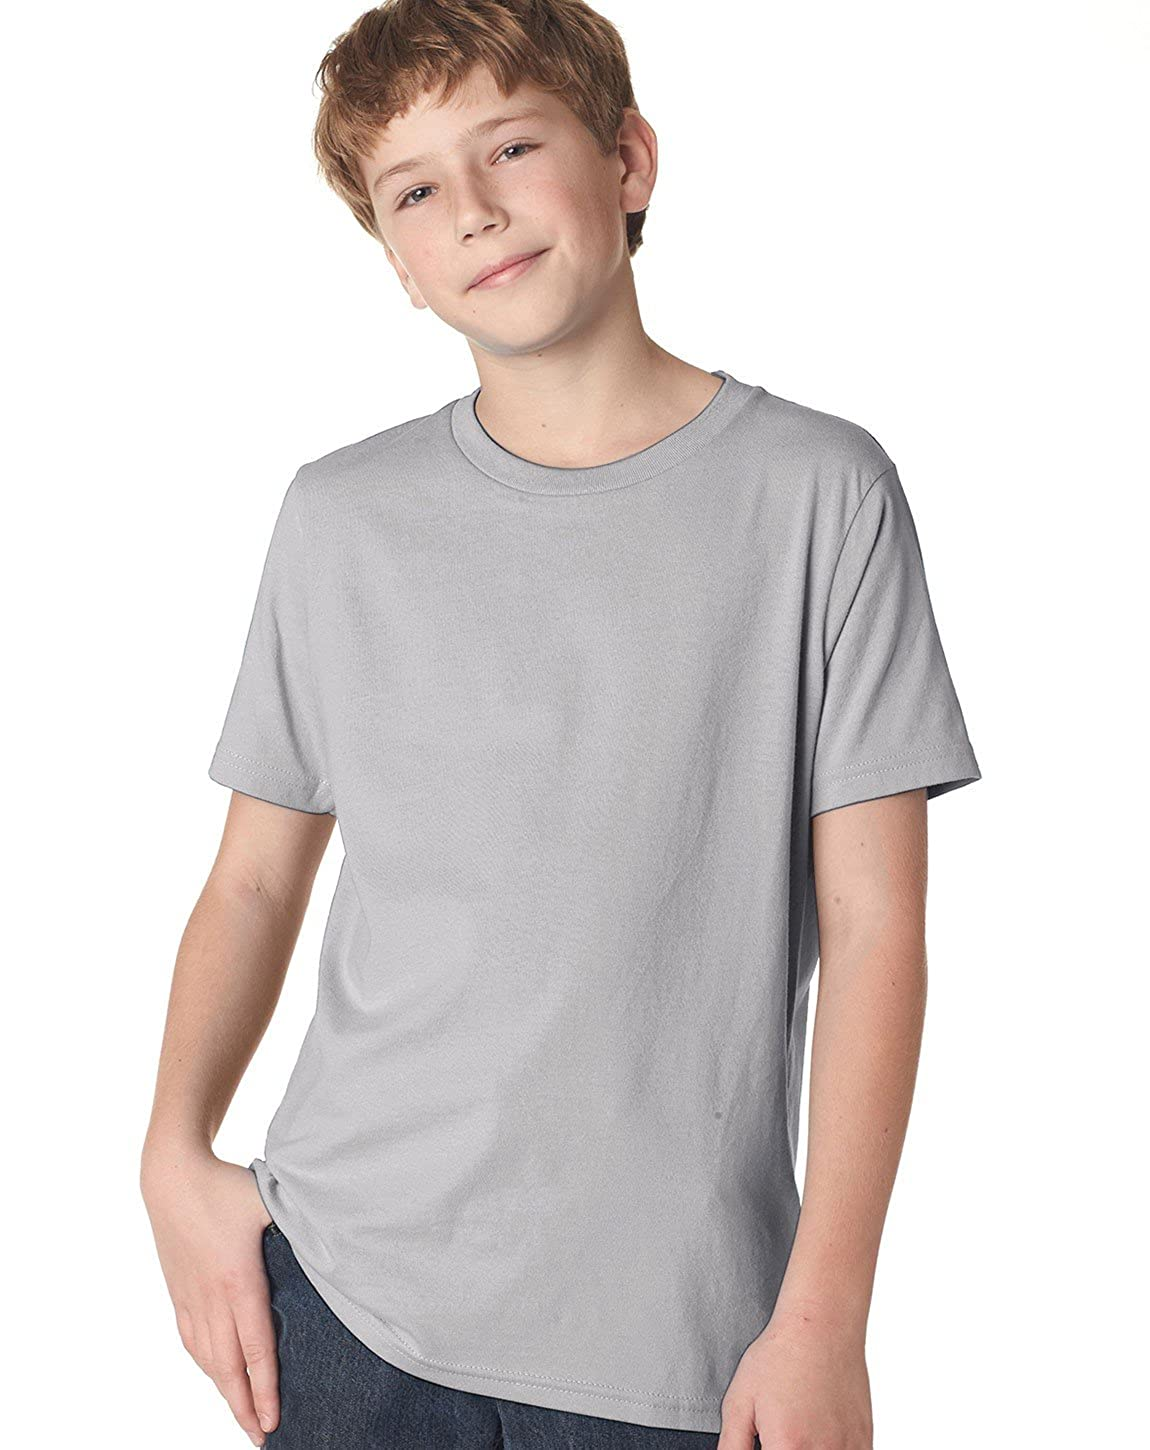 Next Level 3310 Youth Premium Short Sleeve Crew